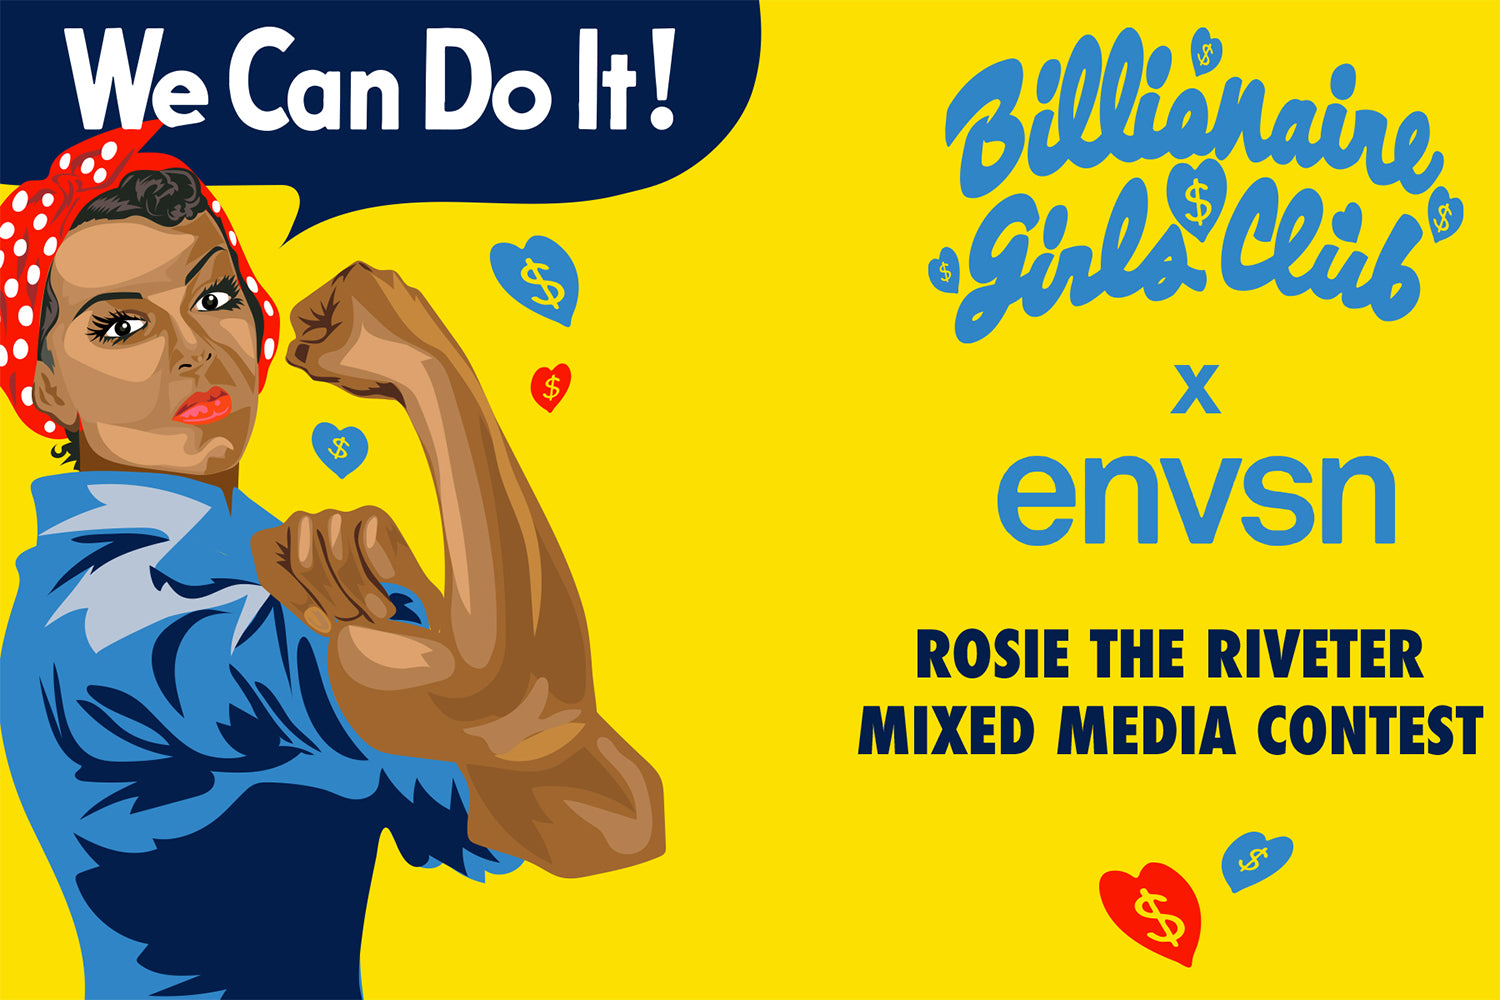 Billionaire Girls Club x ENVSN Rosie the Riveter Mixed Media Contest